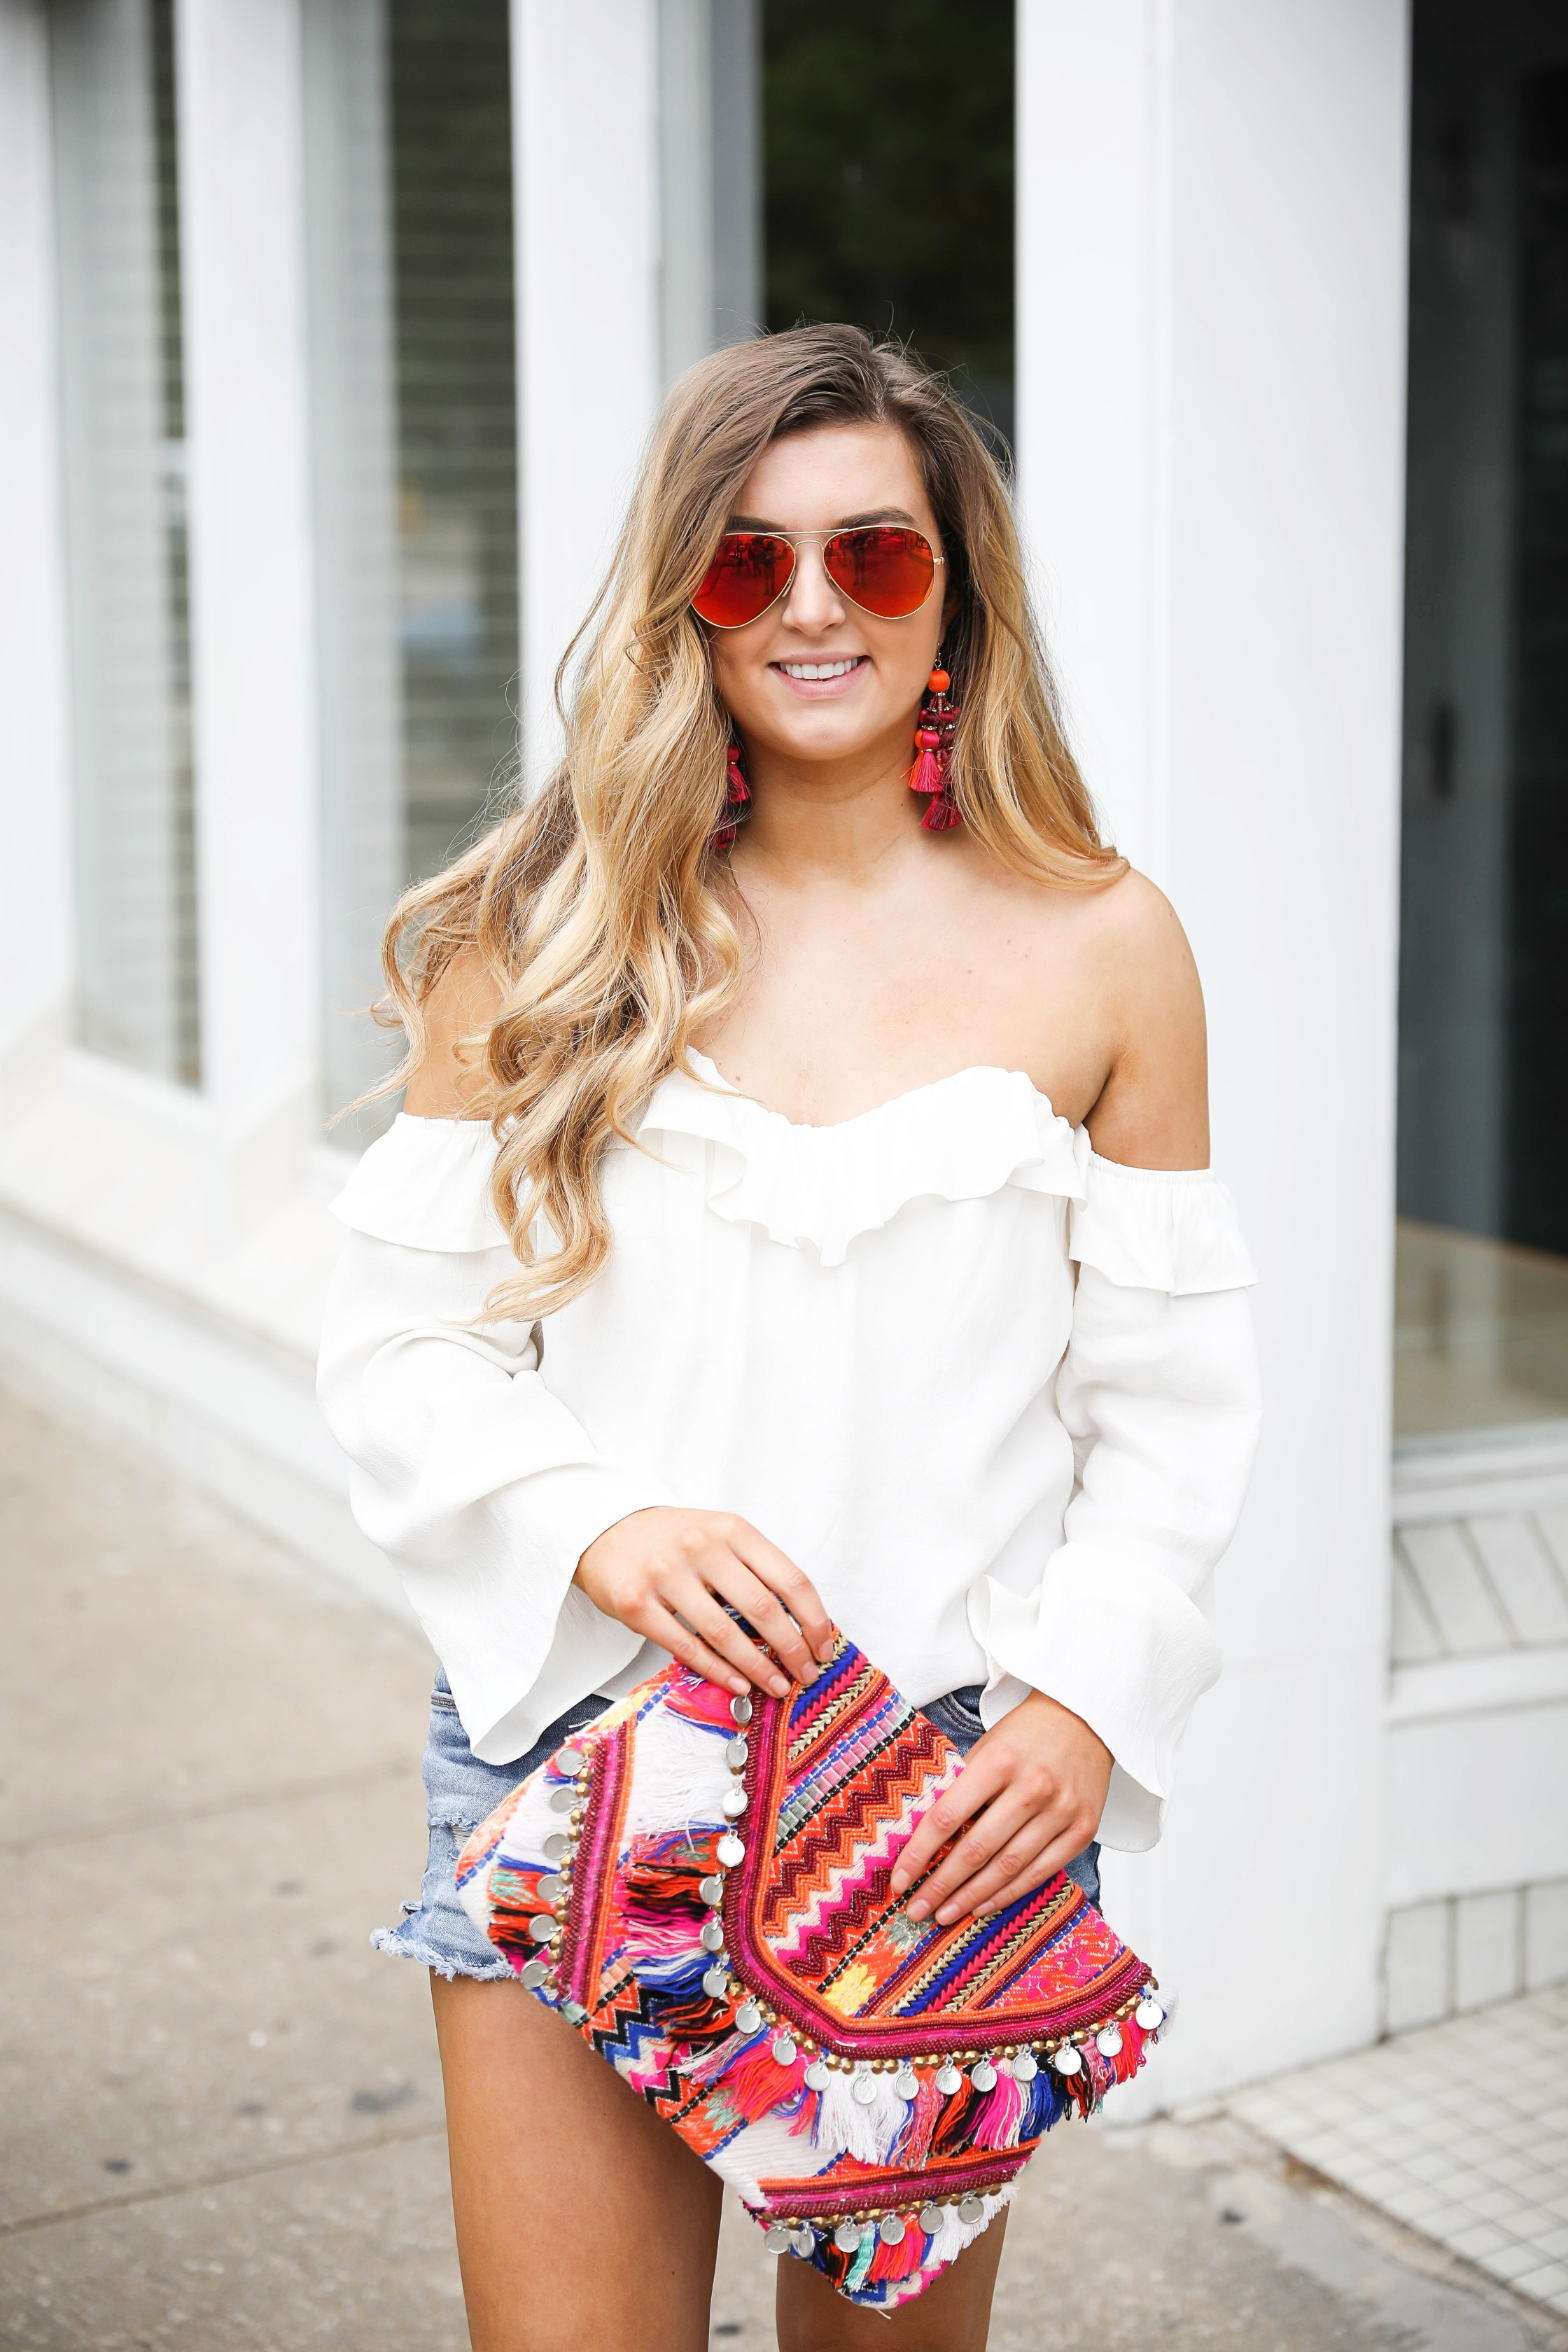 Resort wear chic with off the shoulder white top and fun clutch and earrings on fashion blog daily dose of charm by Lauren Lindmark dailydoseofcharm.com